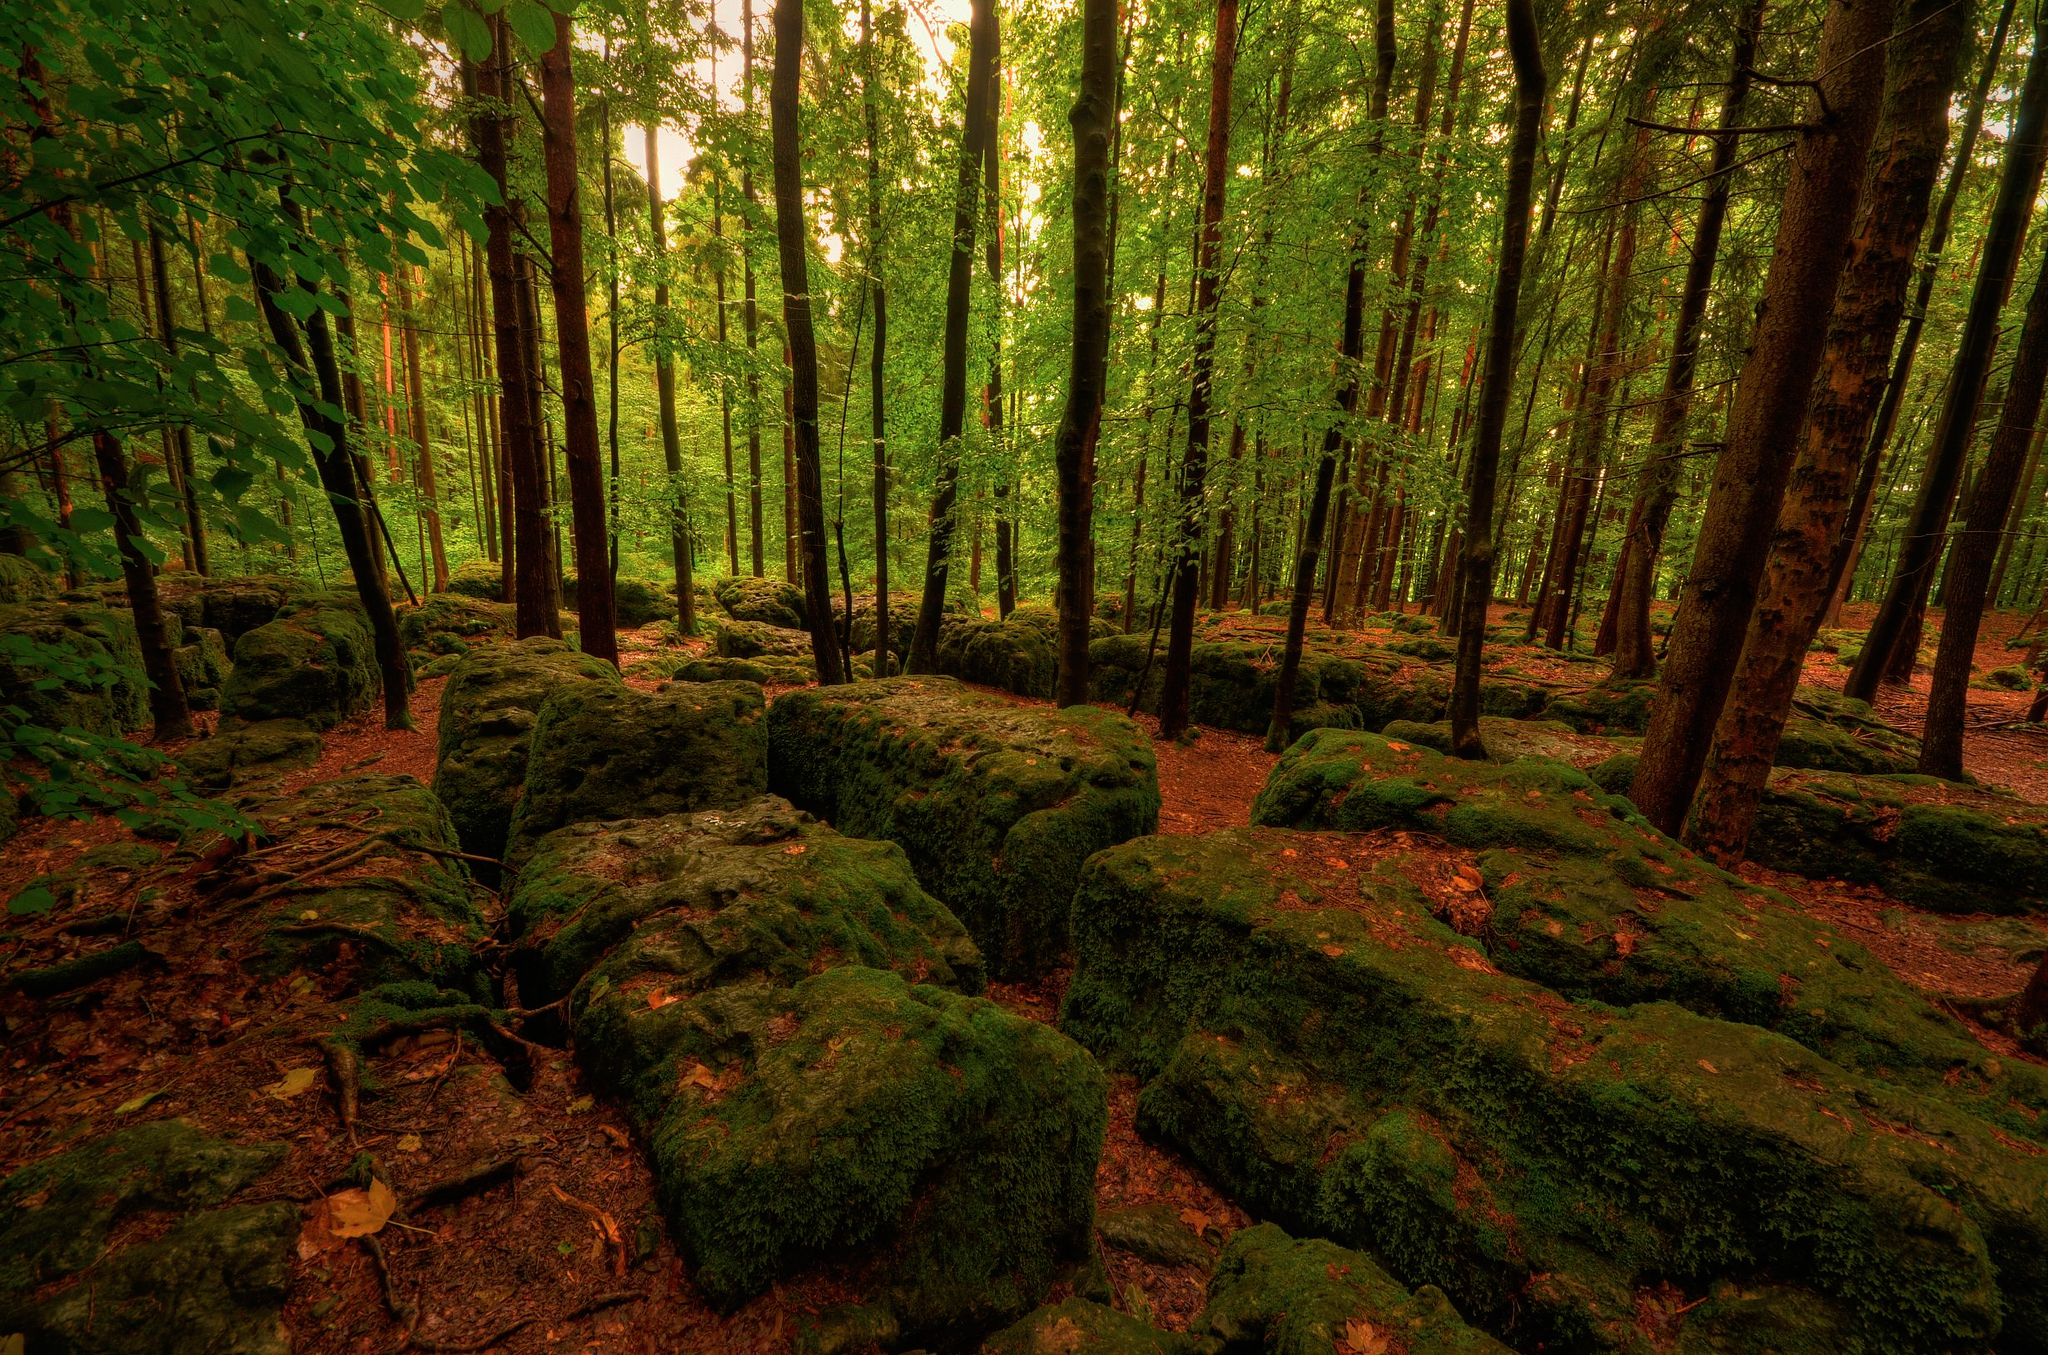 69289 download wallpaper Nature, Trees, Stones, Forest, Moss screensavers and pictures for free